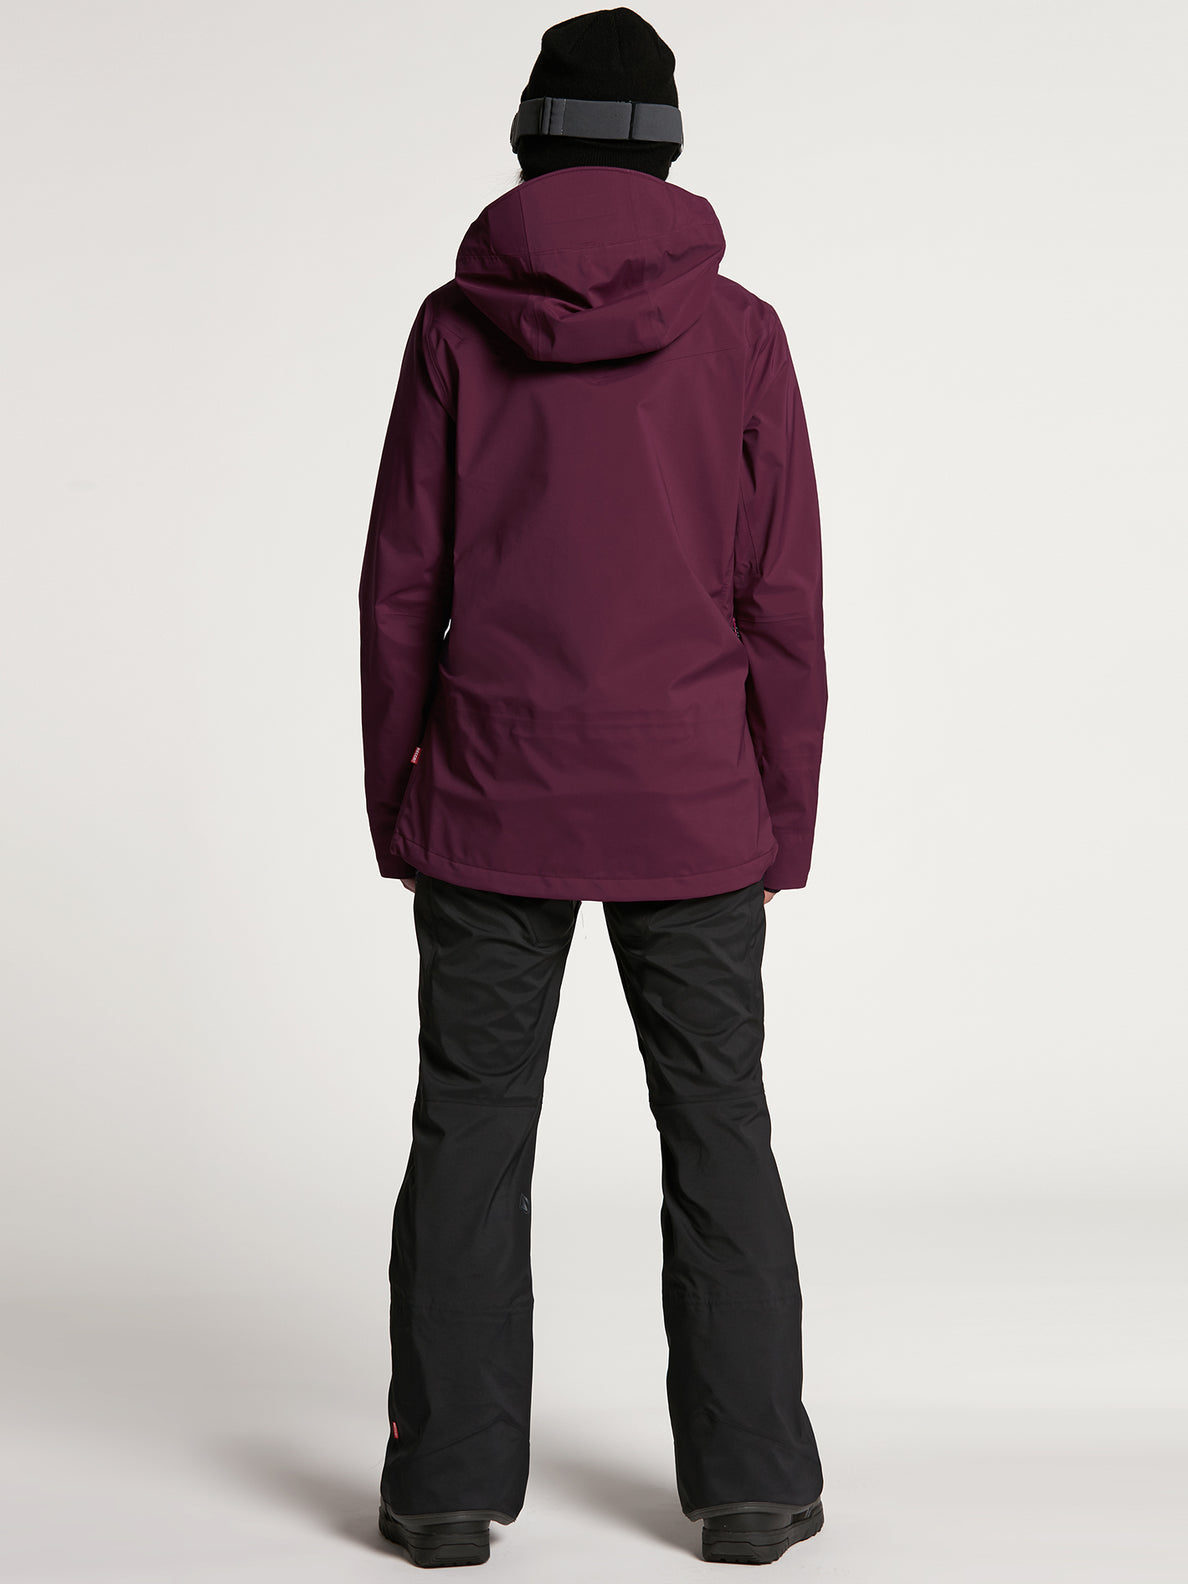 Womens VS Stretch GORE-TEX Jacket - Vibrant Purple (H0652103_VIB) [B]